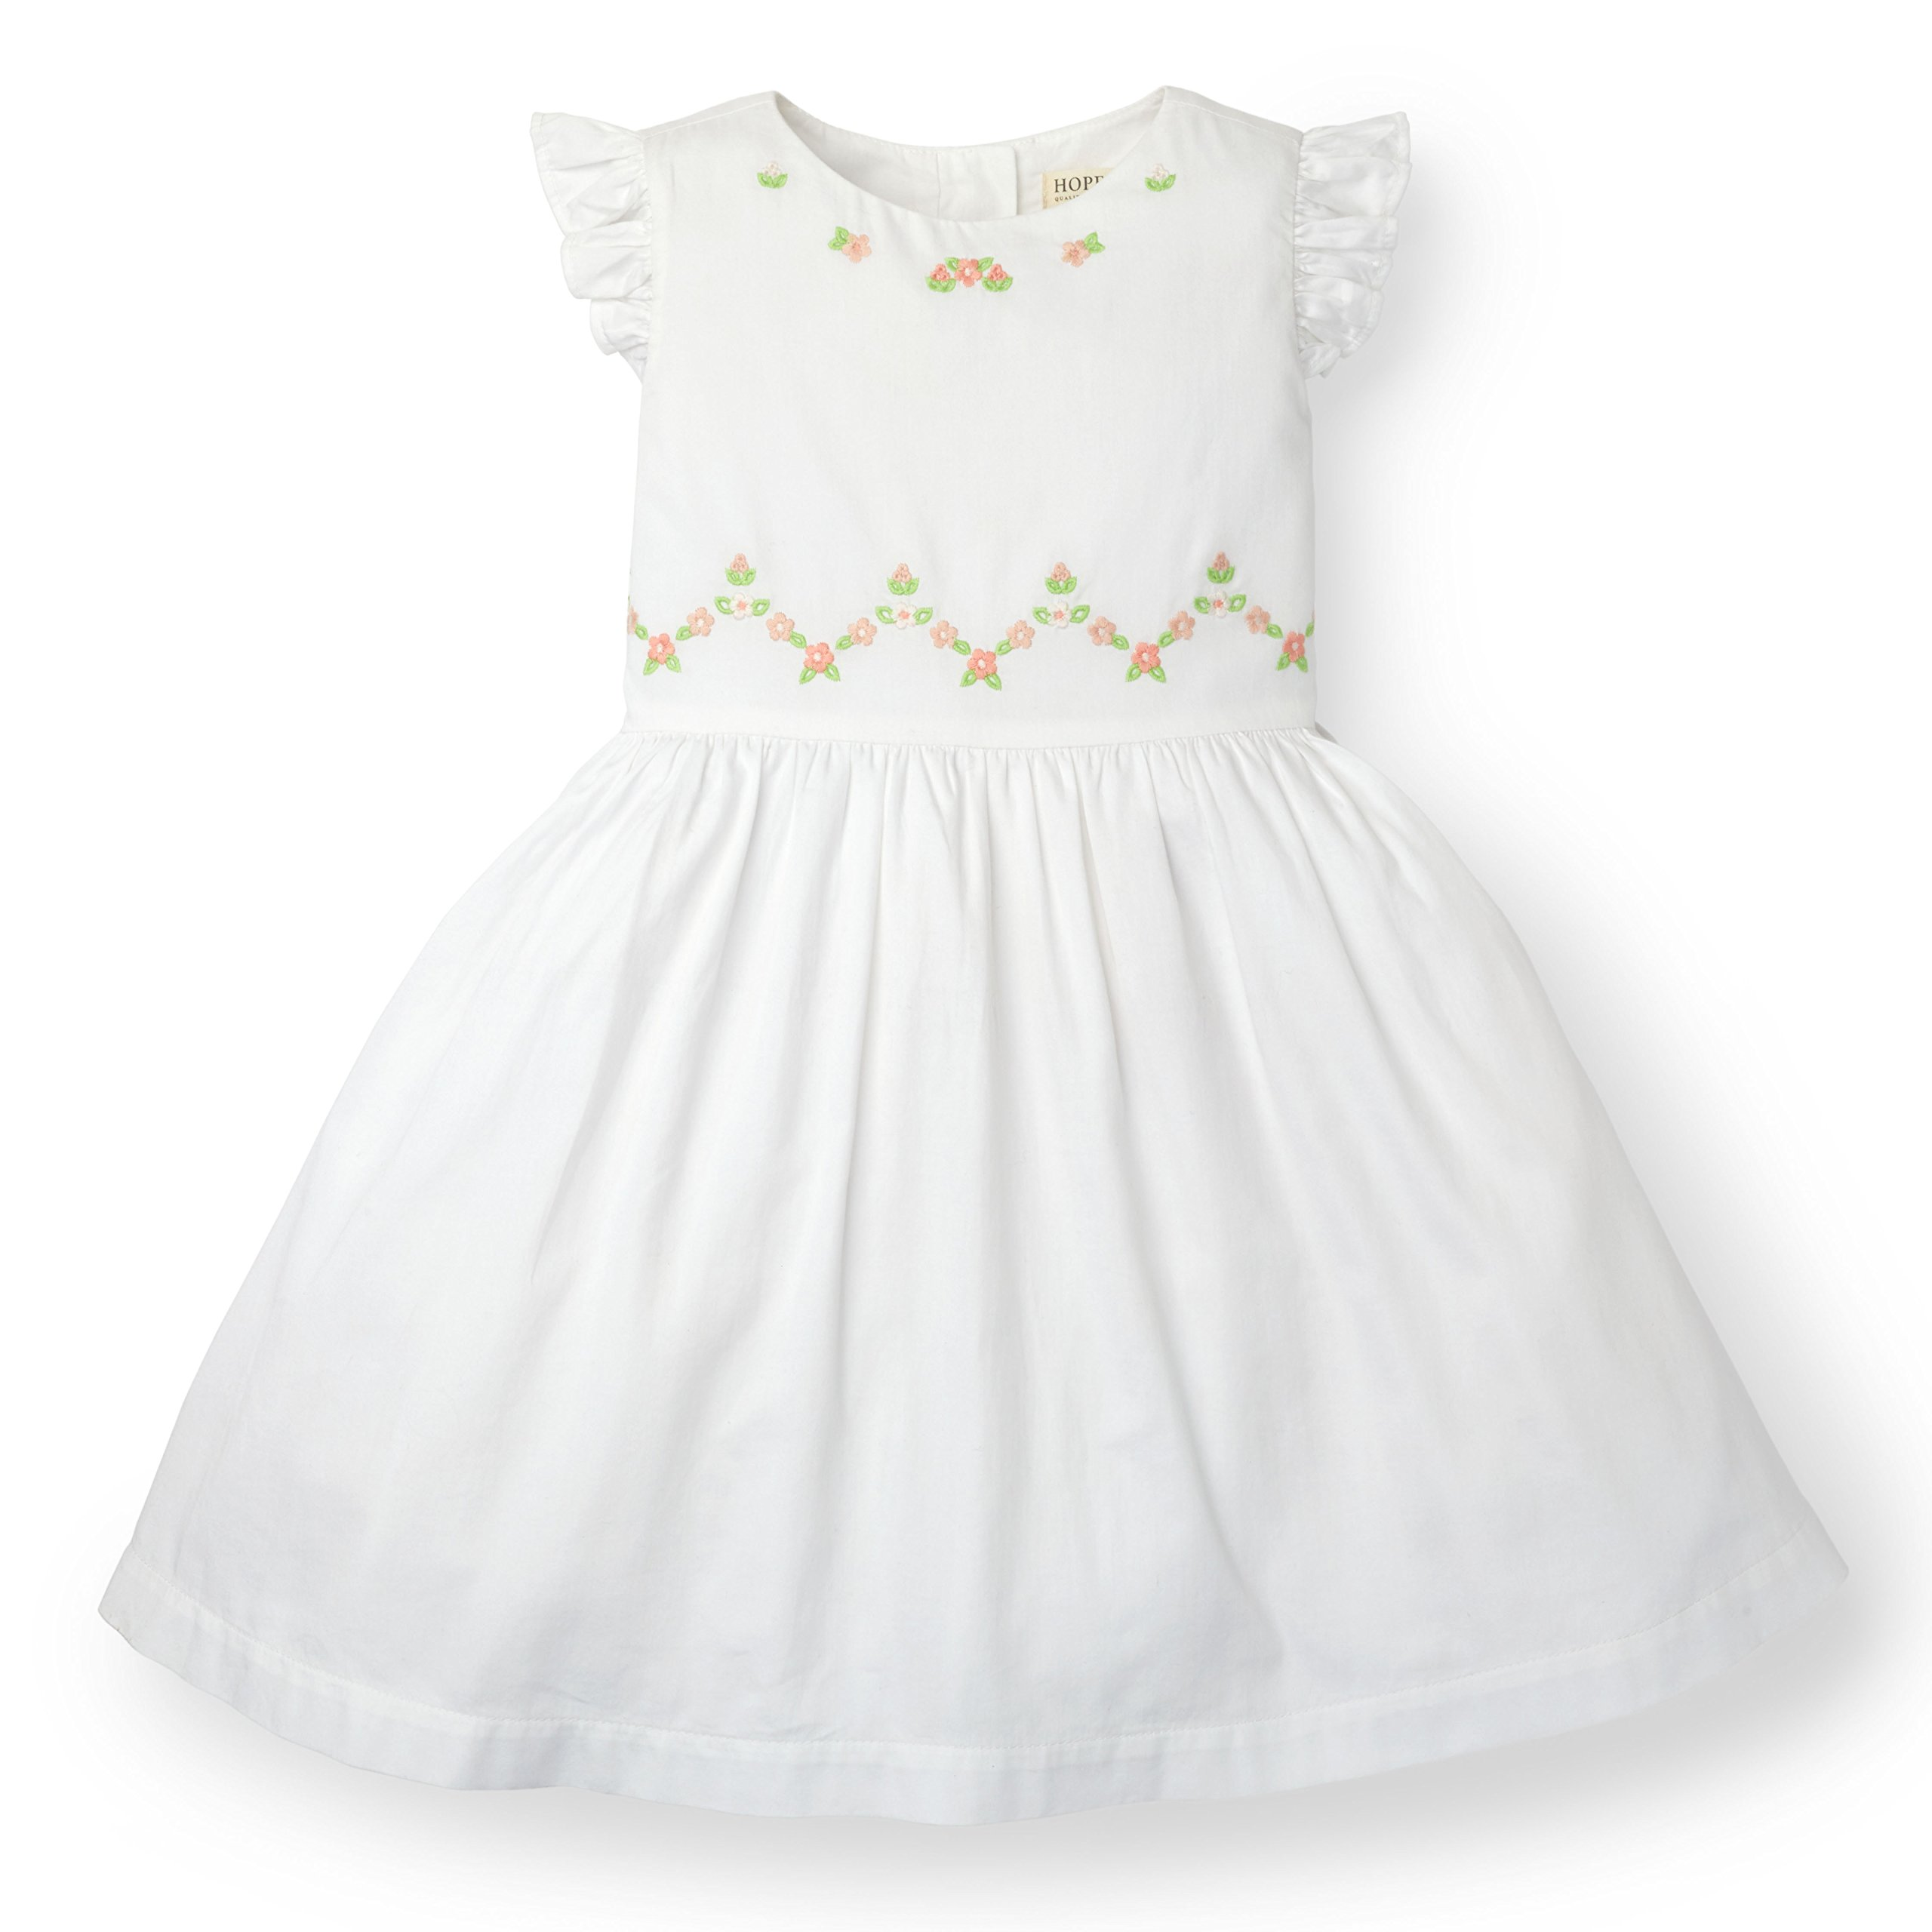 Hope & Henry Girls Embroidered Dress Made with Organic Cotton, White, 10